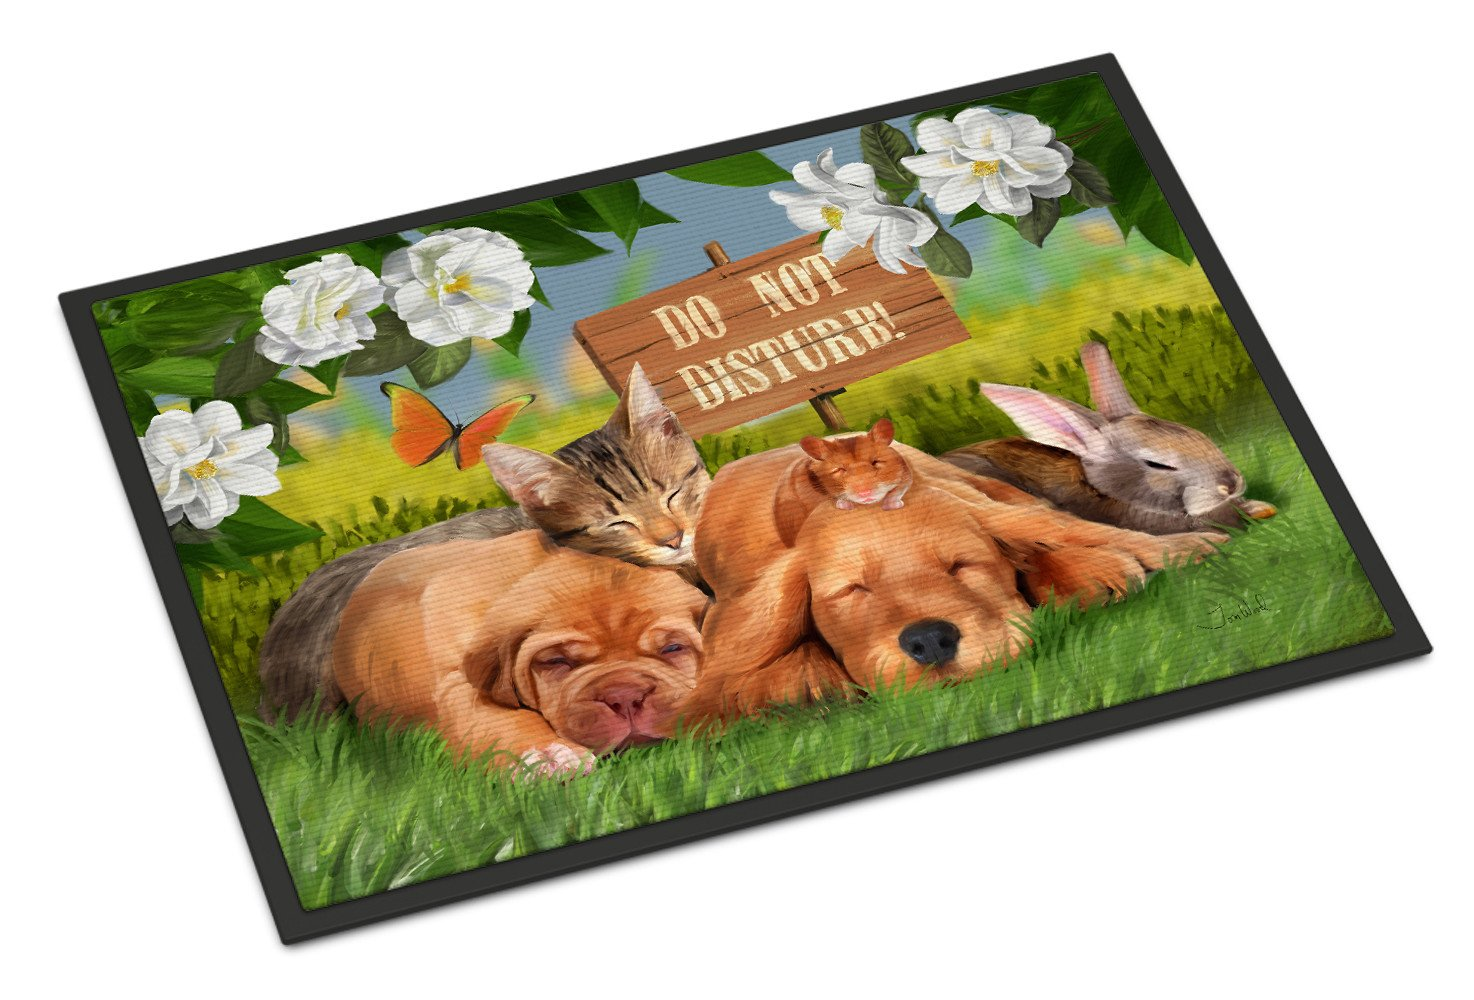 Golden Retriever and Sharpei Do Not Disturb Indoor or Outdoor Mat 24x36 PTW2048JMAT - the-store.com